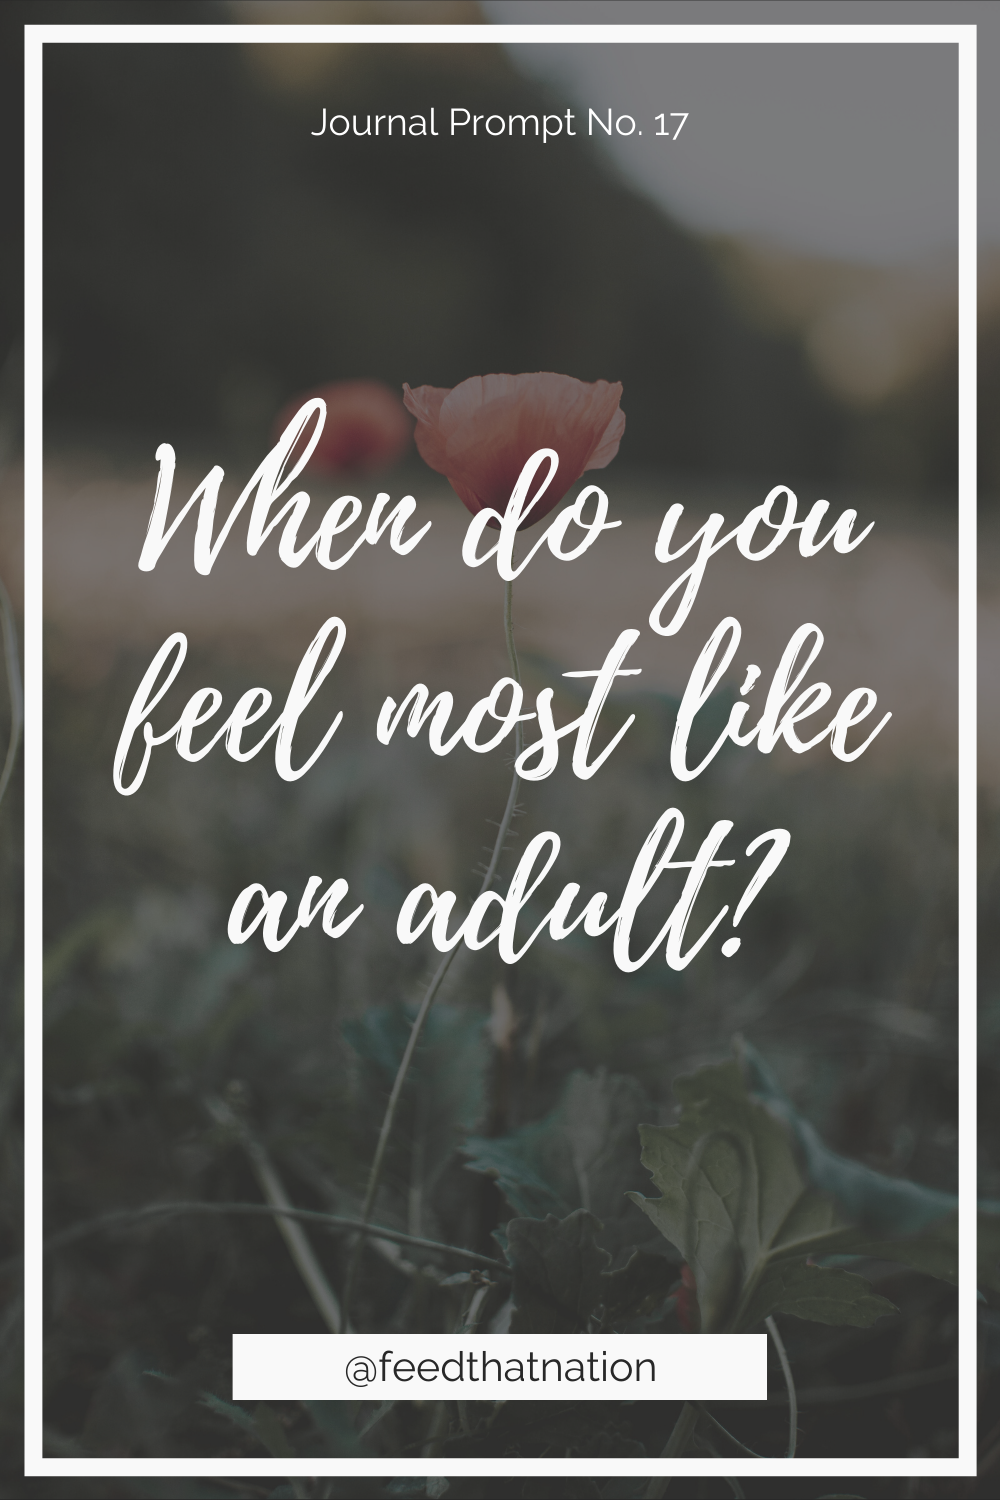 When do you feel most like an adult